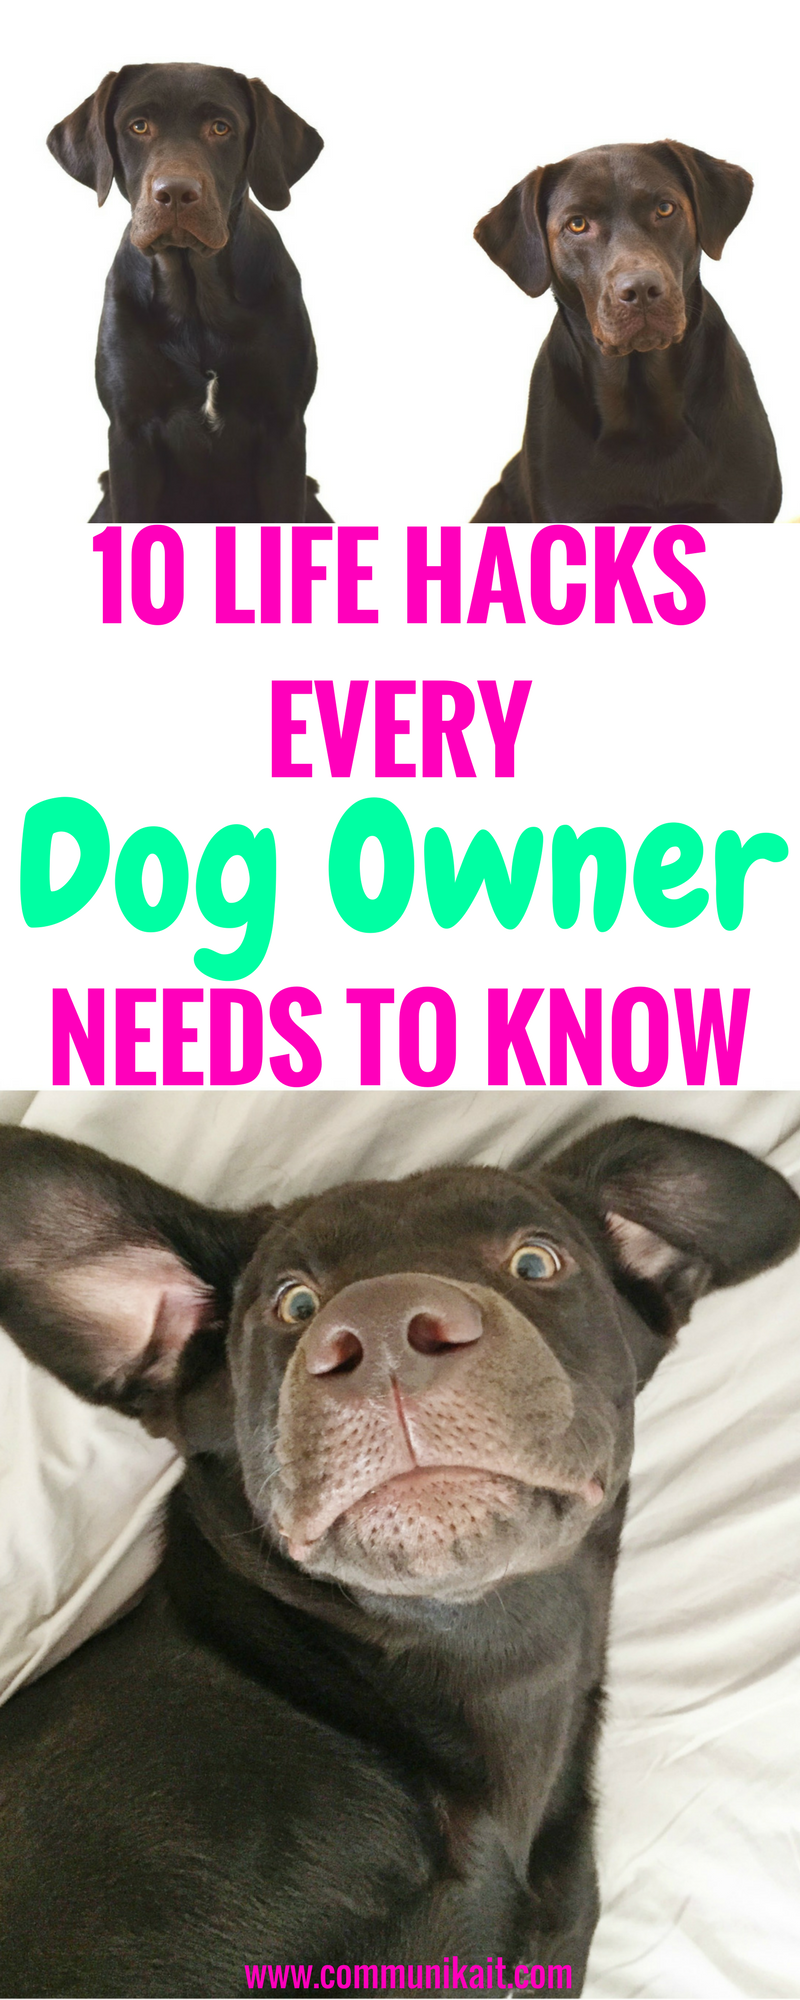 10 Life Hacks For Dog Owners - Tips For Pets - Puppy Tips - Life Hacks For Dogs - Puppy Tips - Dog Care - Communikait by Kait Hanson - Chocolate Labrador